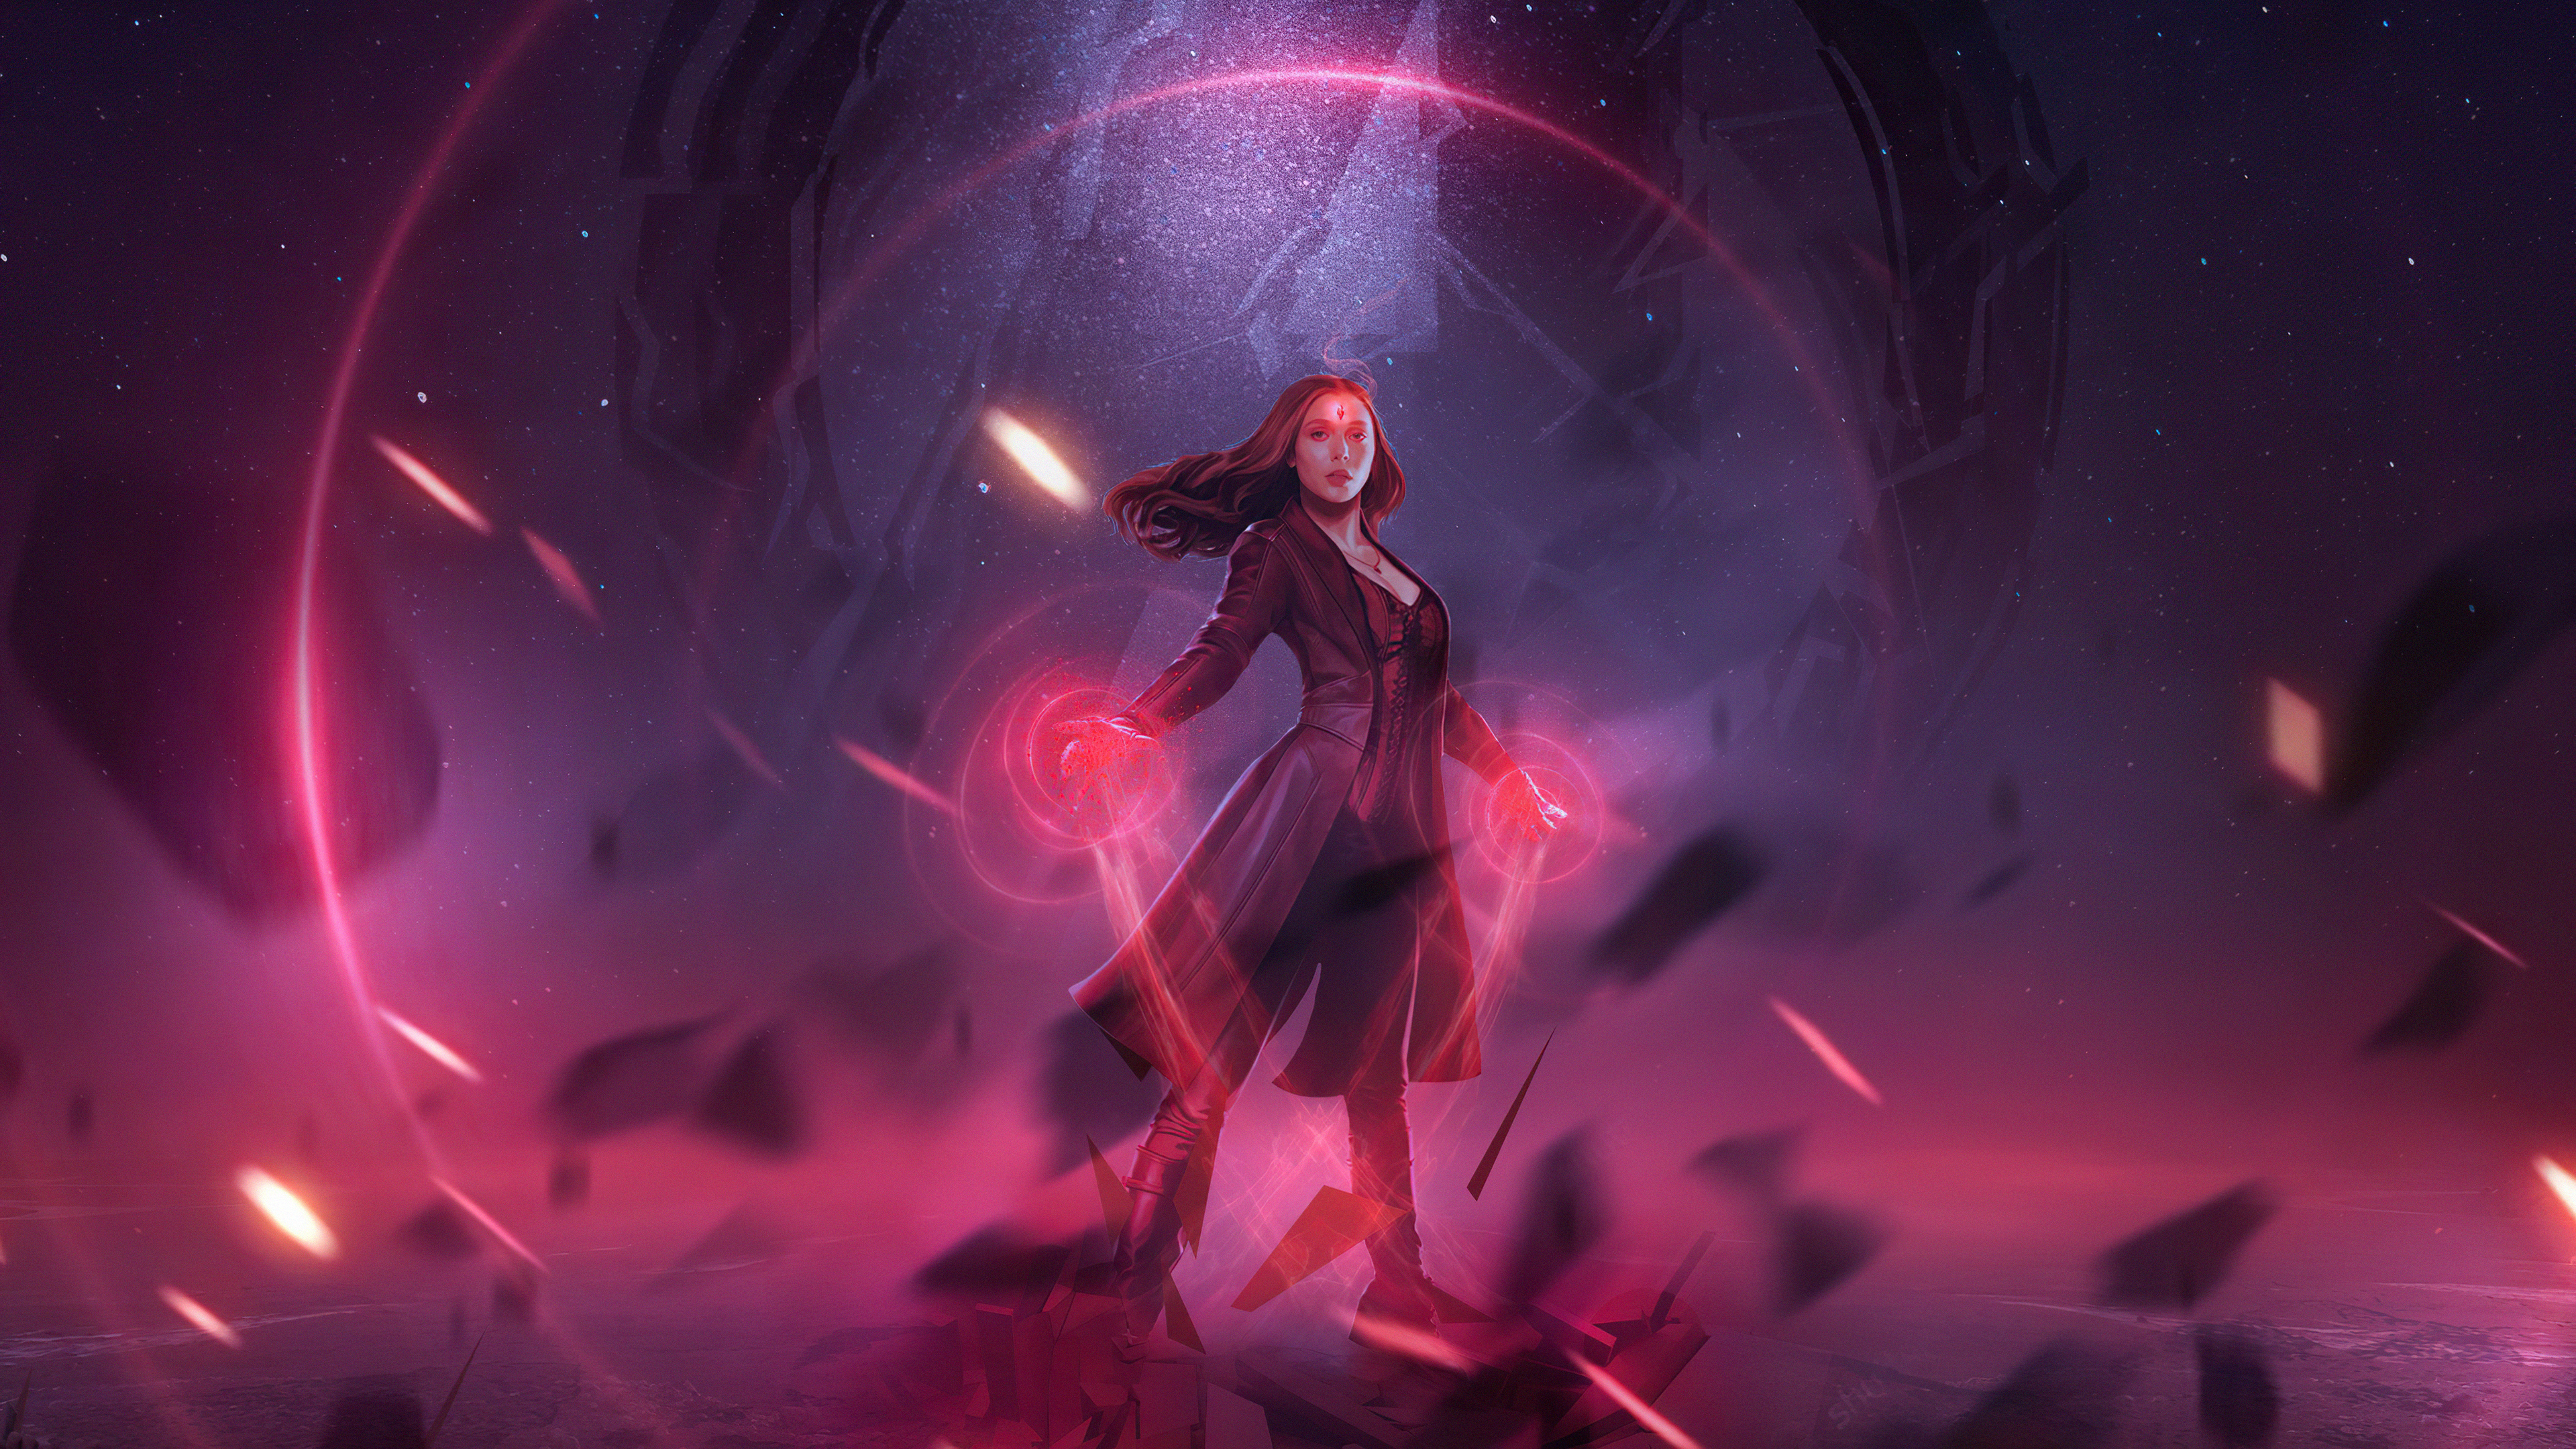 Wallpaper Power of Scarlet Witch